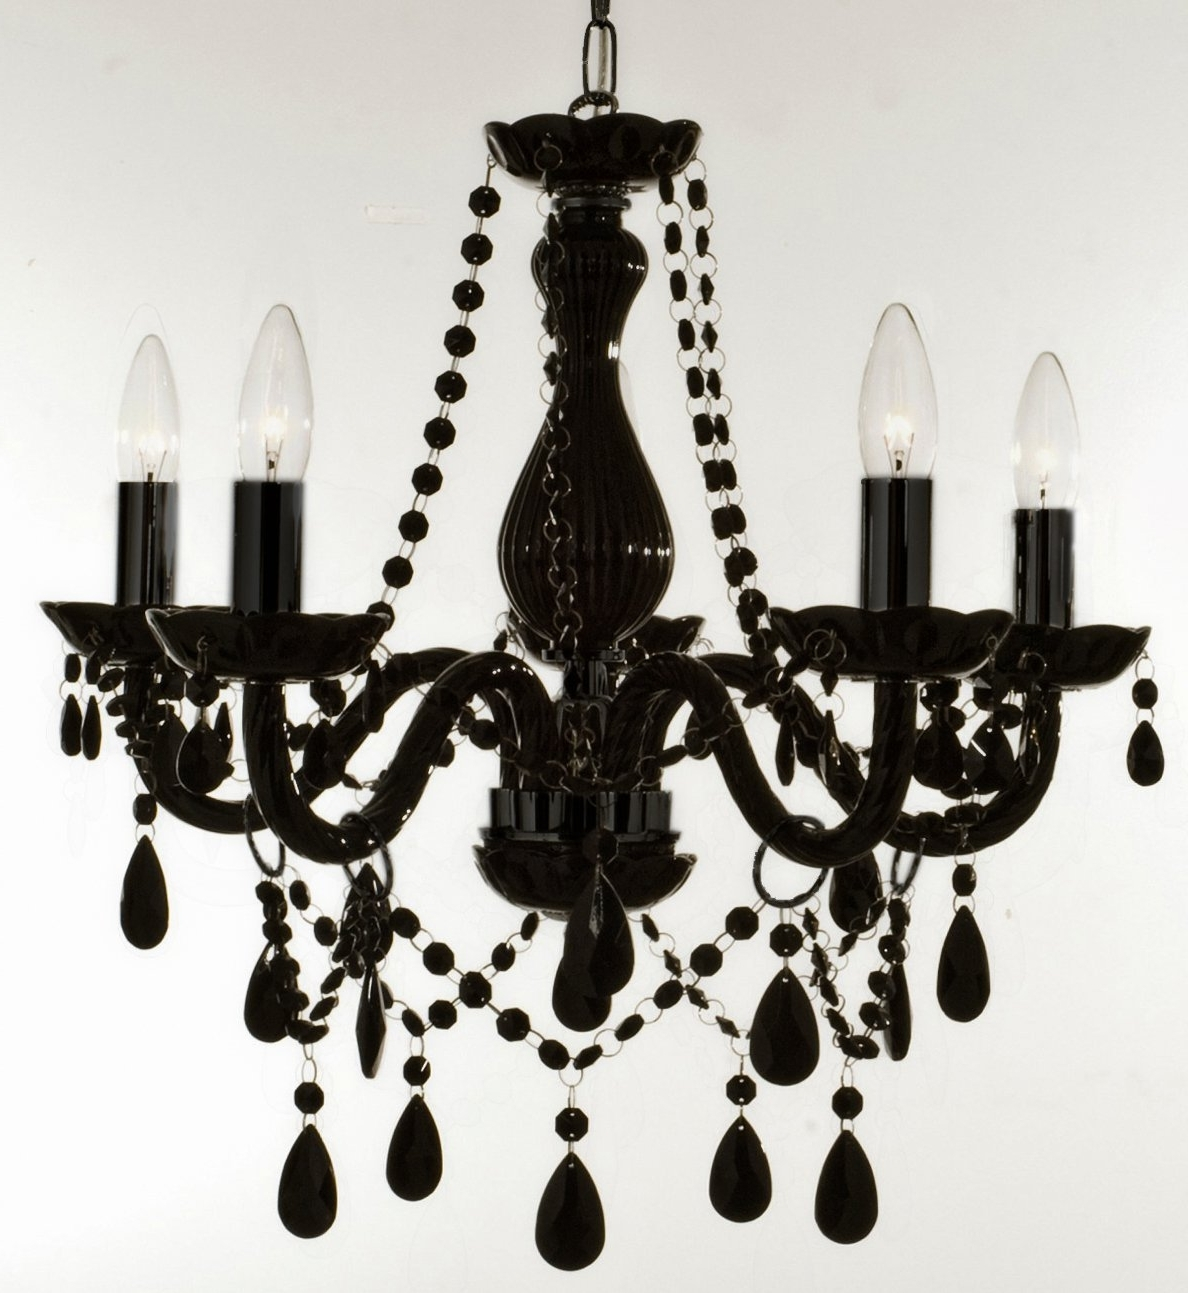 Black Chandeliers With Preferred Chandelier (View 9 of 20)